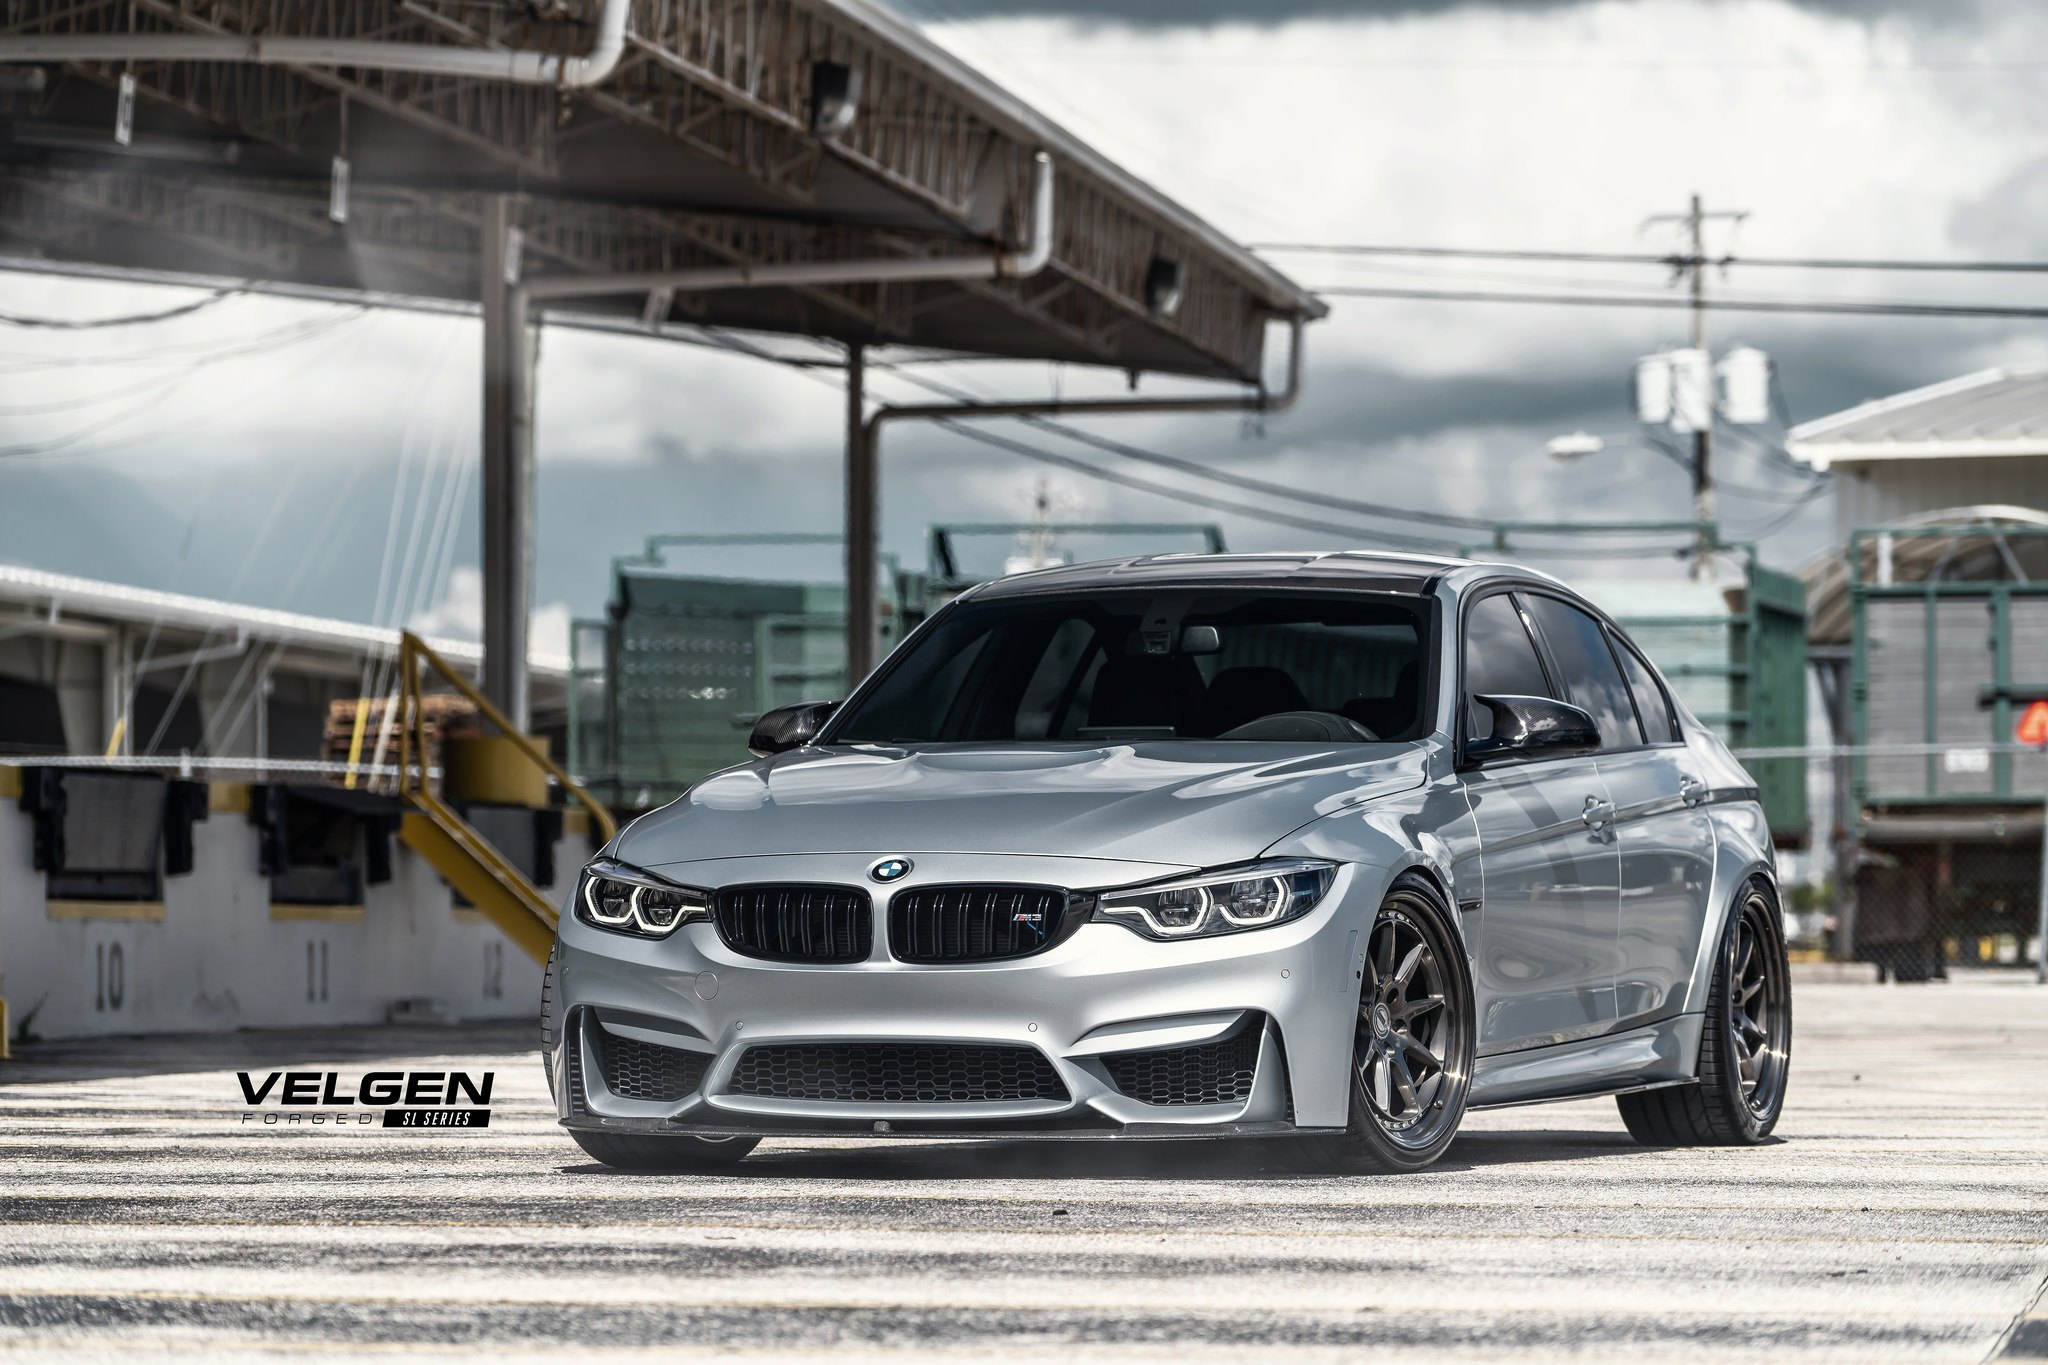 Bmw M3 Looks Elegant On Velgen Wheels Caridcom Gallery